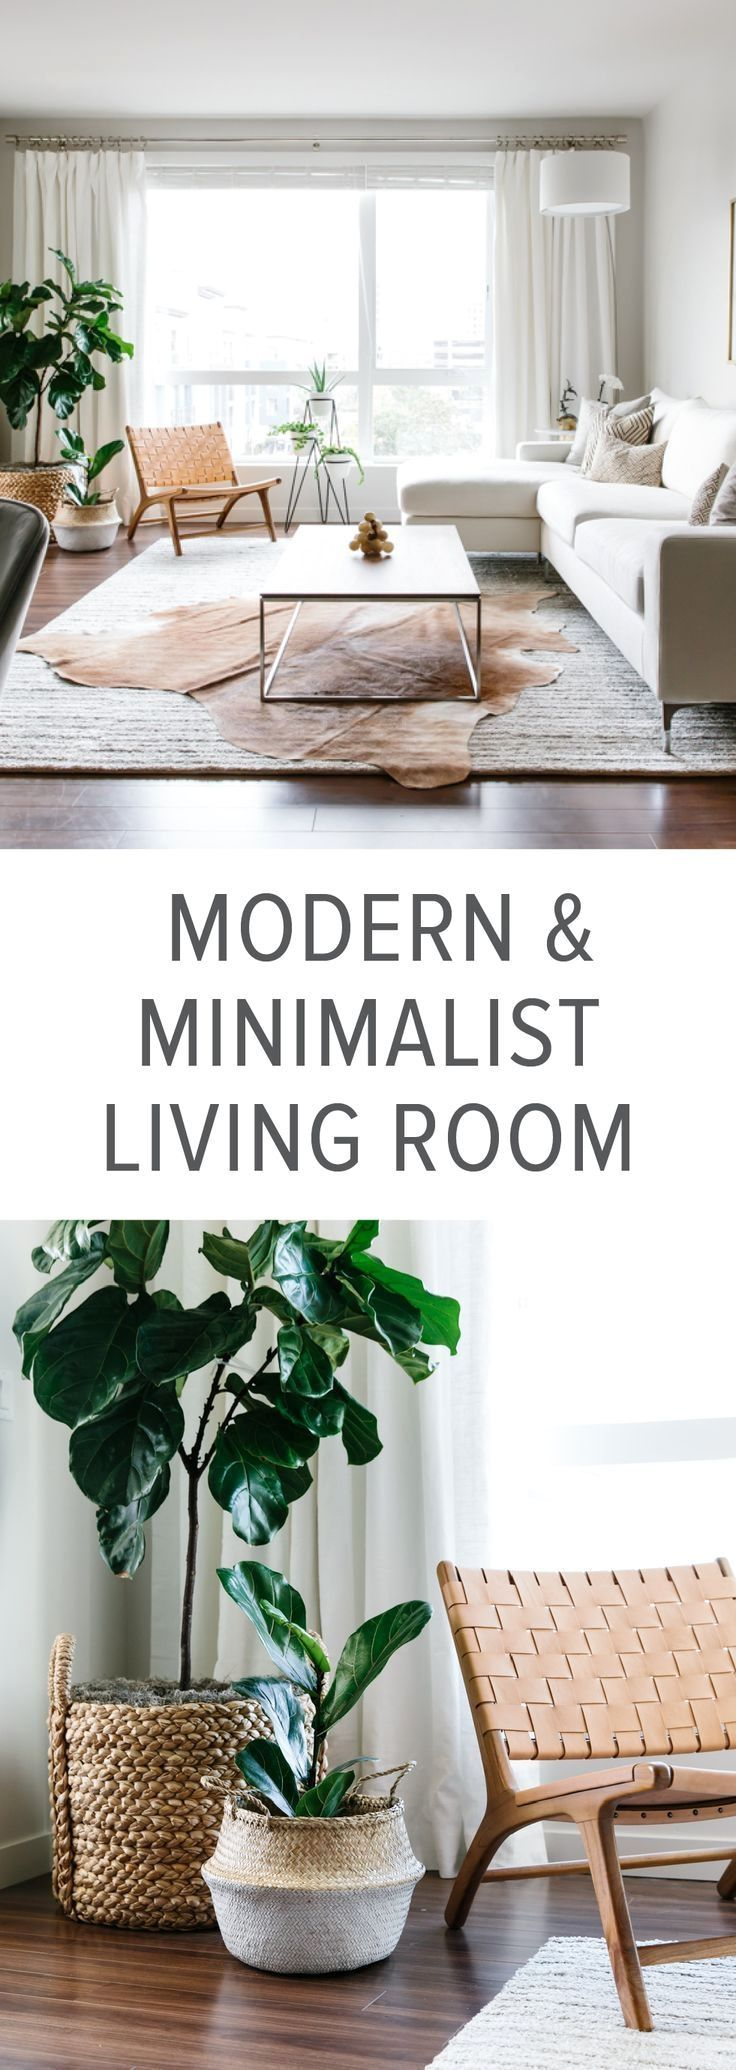 As a food and lifestyle blogger (and of course, YouTuber) my home is frequently the backdrop to many photographs and videos, so I wanted it to feel me. Thankfully, Havenly helped me accomplish that and blend my modern, minimalist, Scandinavian and SoCal-influenced style into one cohesive living room space. #havenlylivingroom As a food and lifestyle blogger (and of course, YouTuber) my home is frequently the backdrop to many photographs and videos, so I wanted it to feel me. Thankfully, Havenly #havenlylivingroom